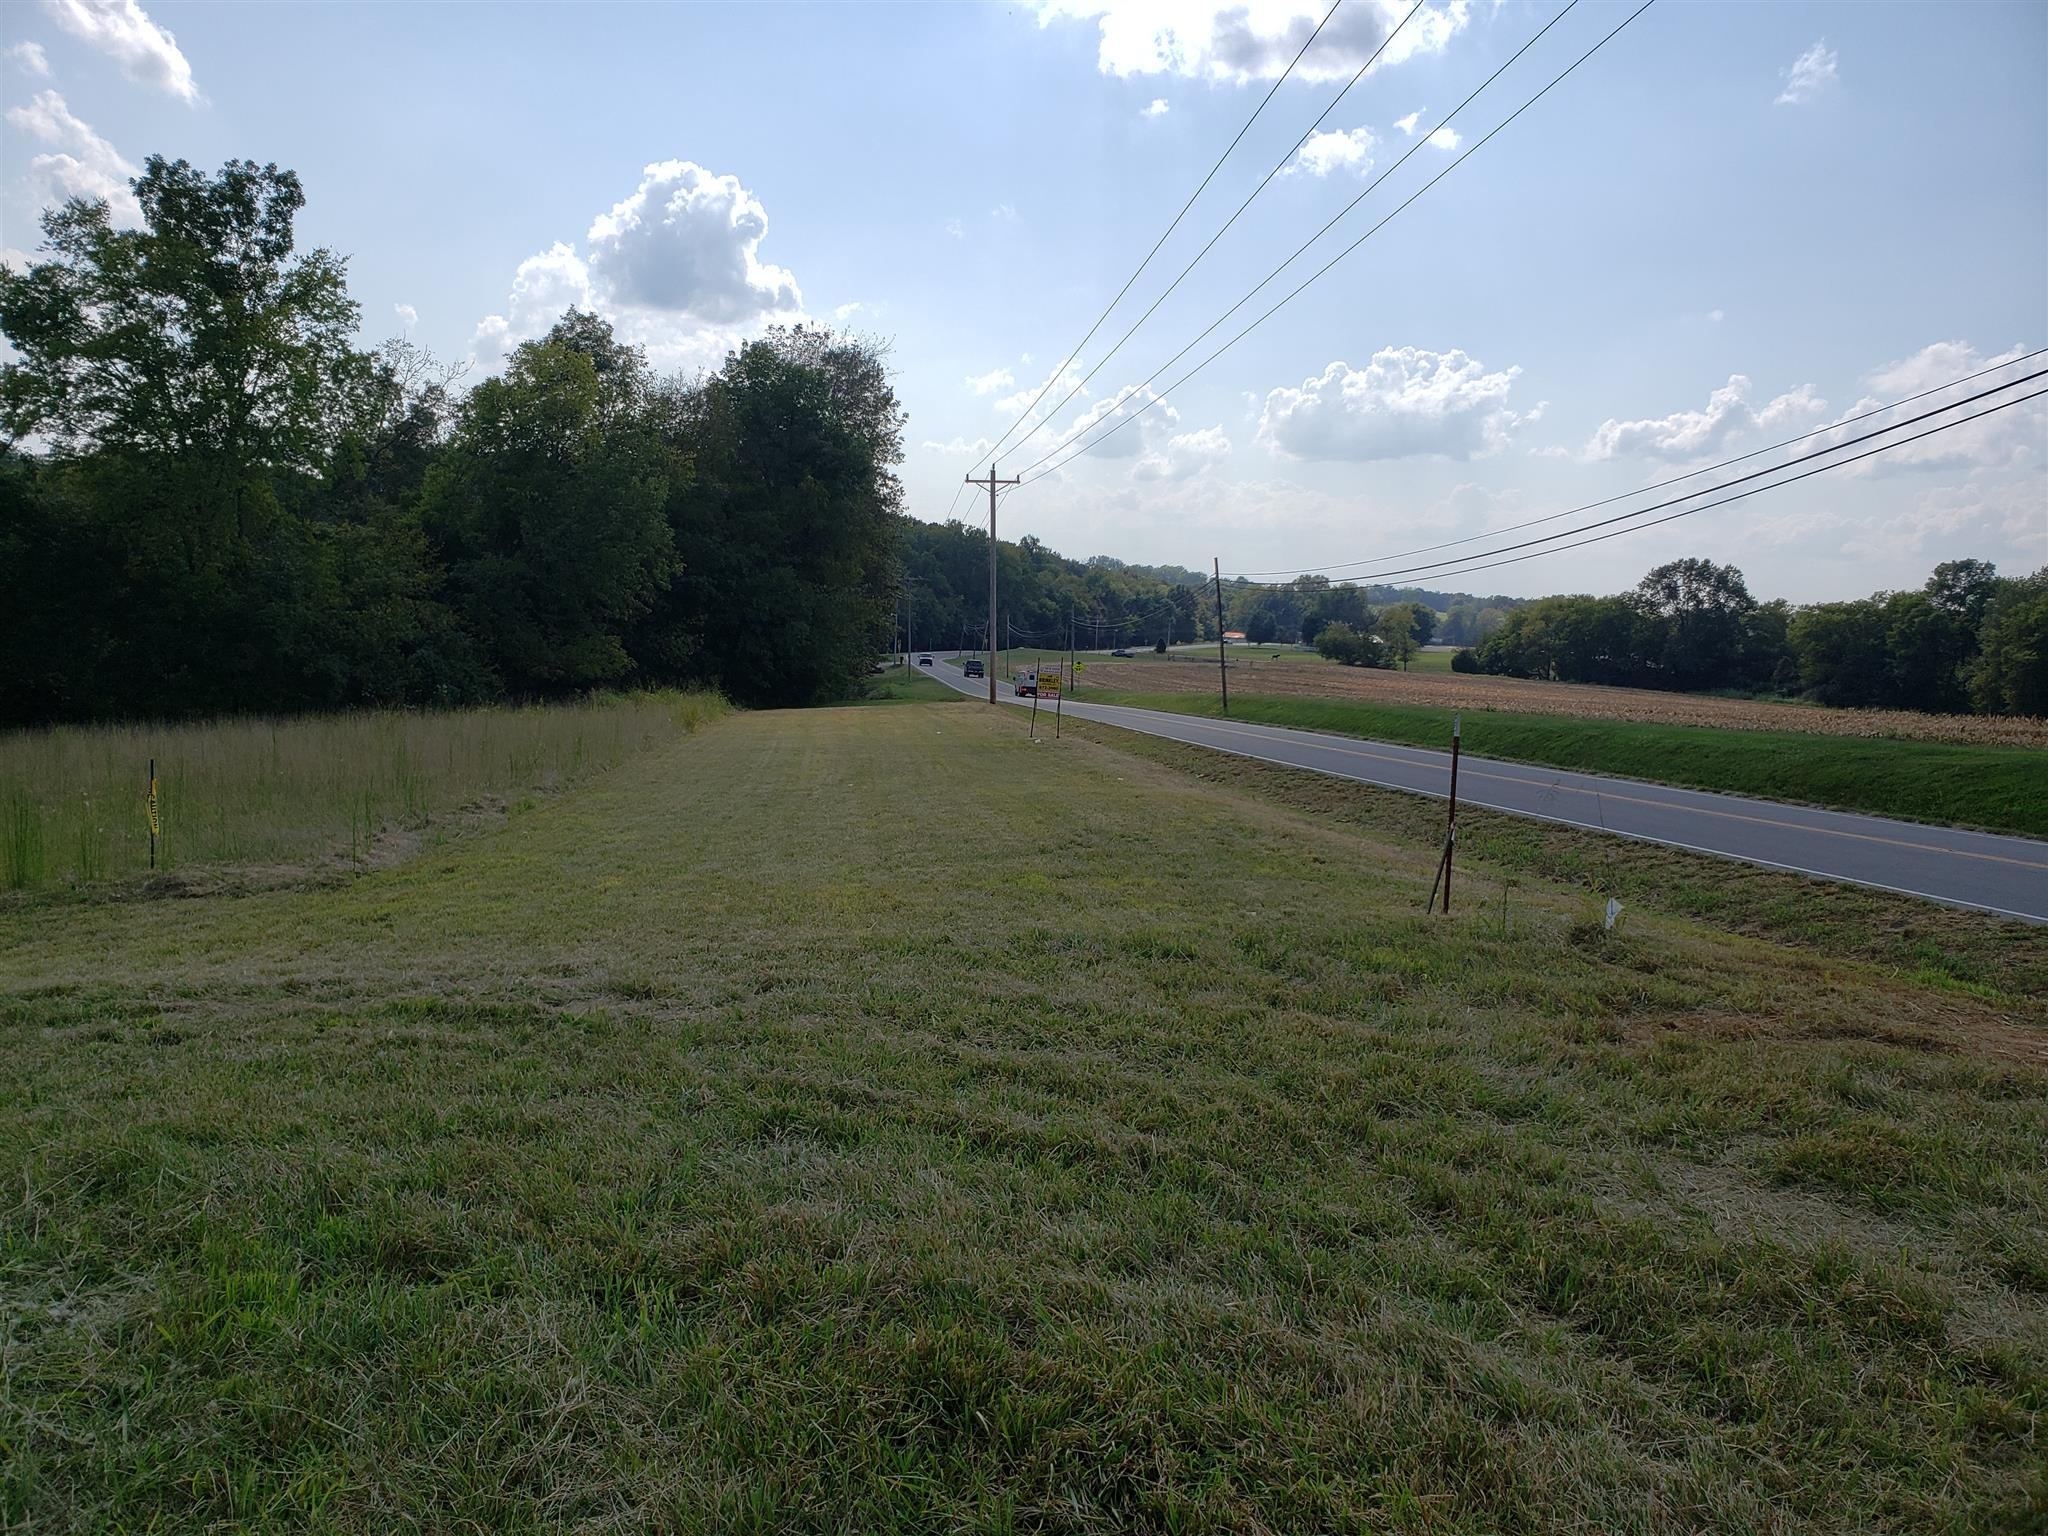 0 Hwy 49 East, Springfield, TN 37172 - Springfield, TN real estate listing